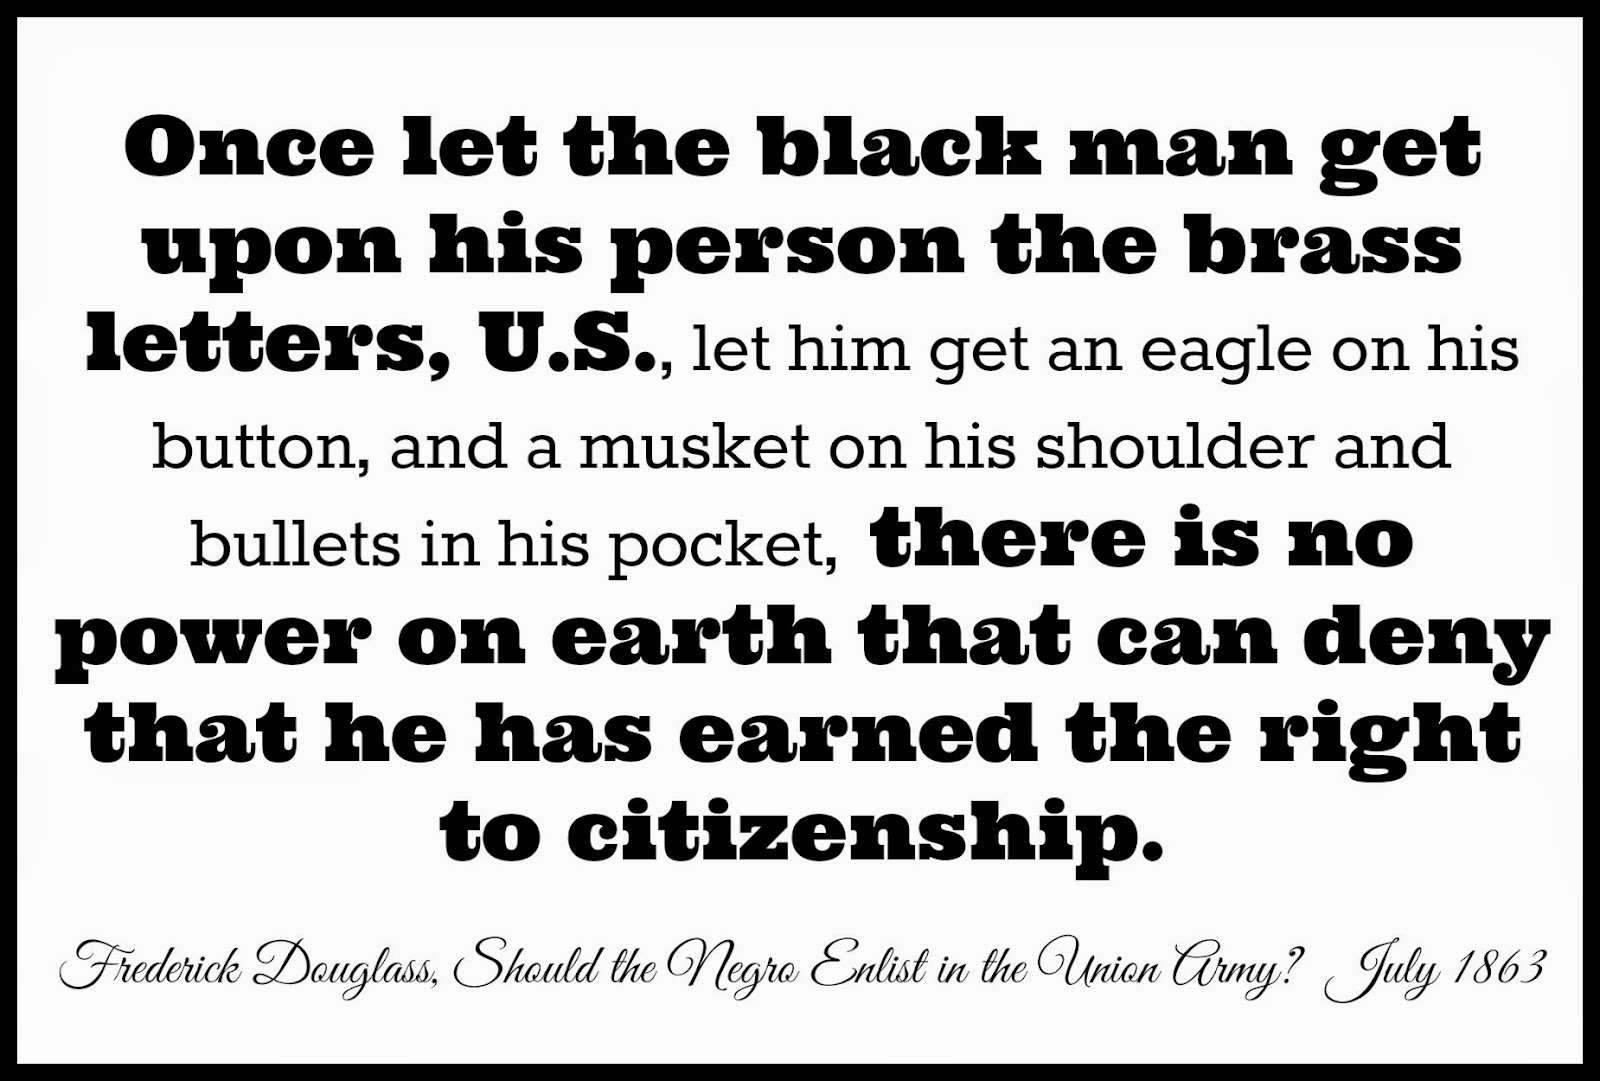 Once let the black man get upon his person the brass letters, U.S., there is no power on earth that can deny that he has earned the right to citizenship. Fredrick Douglass, Should the Negro Enlist in the Union Army?, July 1863